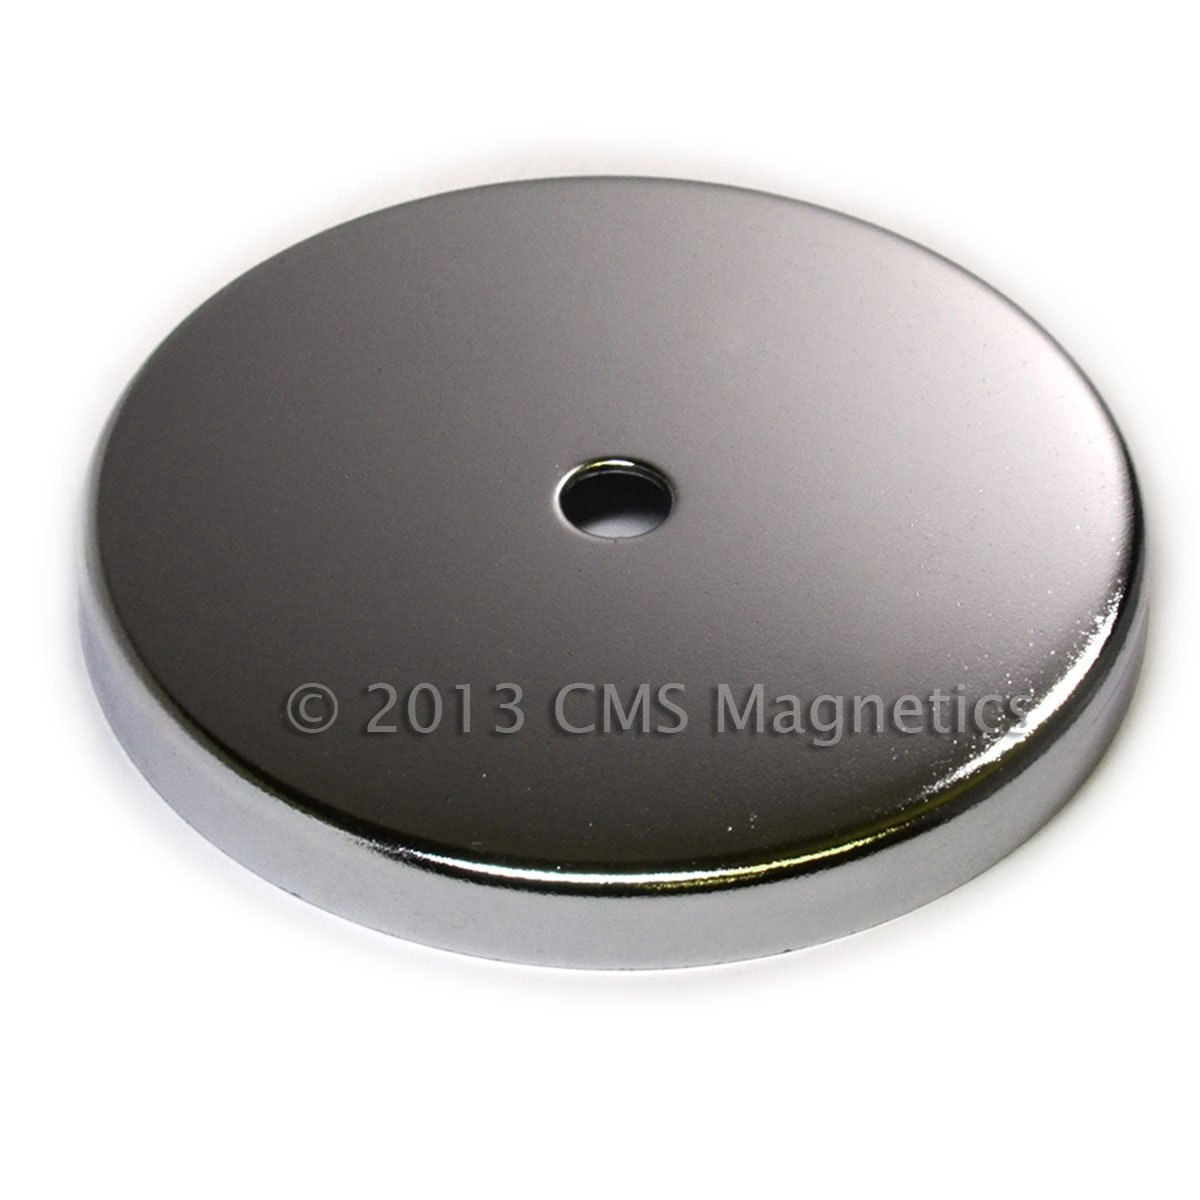 CMS Magnetics® 210 LB Holding Power Round Base Magnet RB90 4 7/8'' Cup Magnet 2-Count